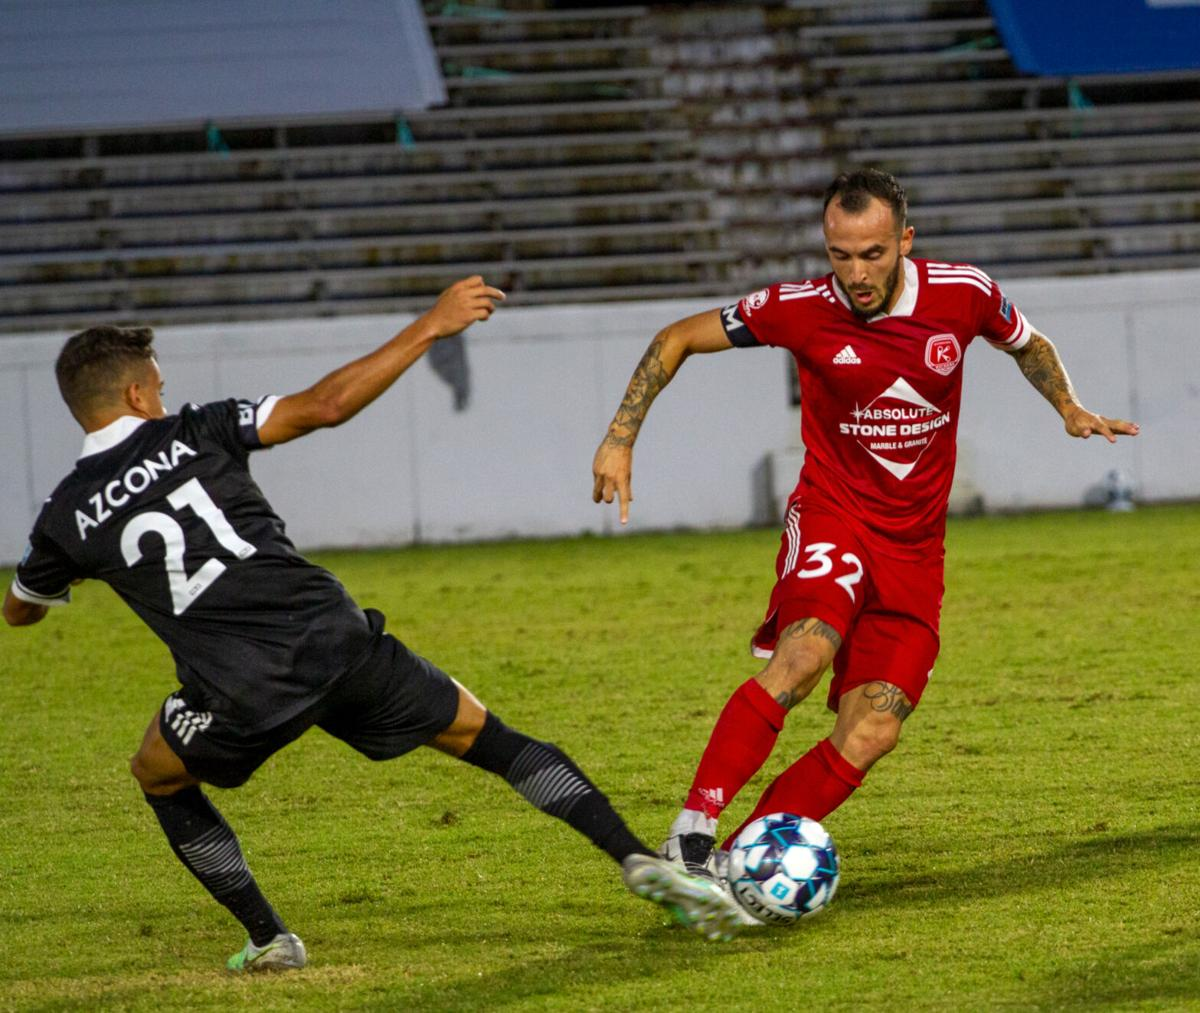 Fort Lauderdale at Richmond Kickers: Terzaghi wins a ball